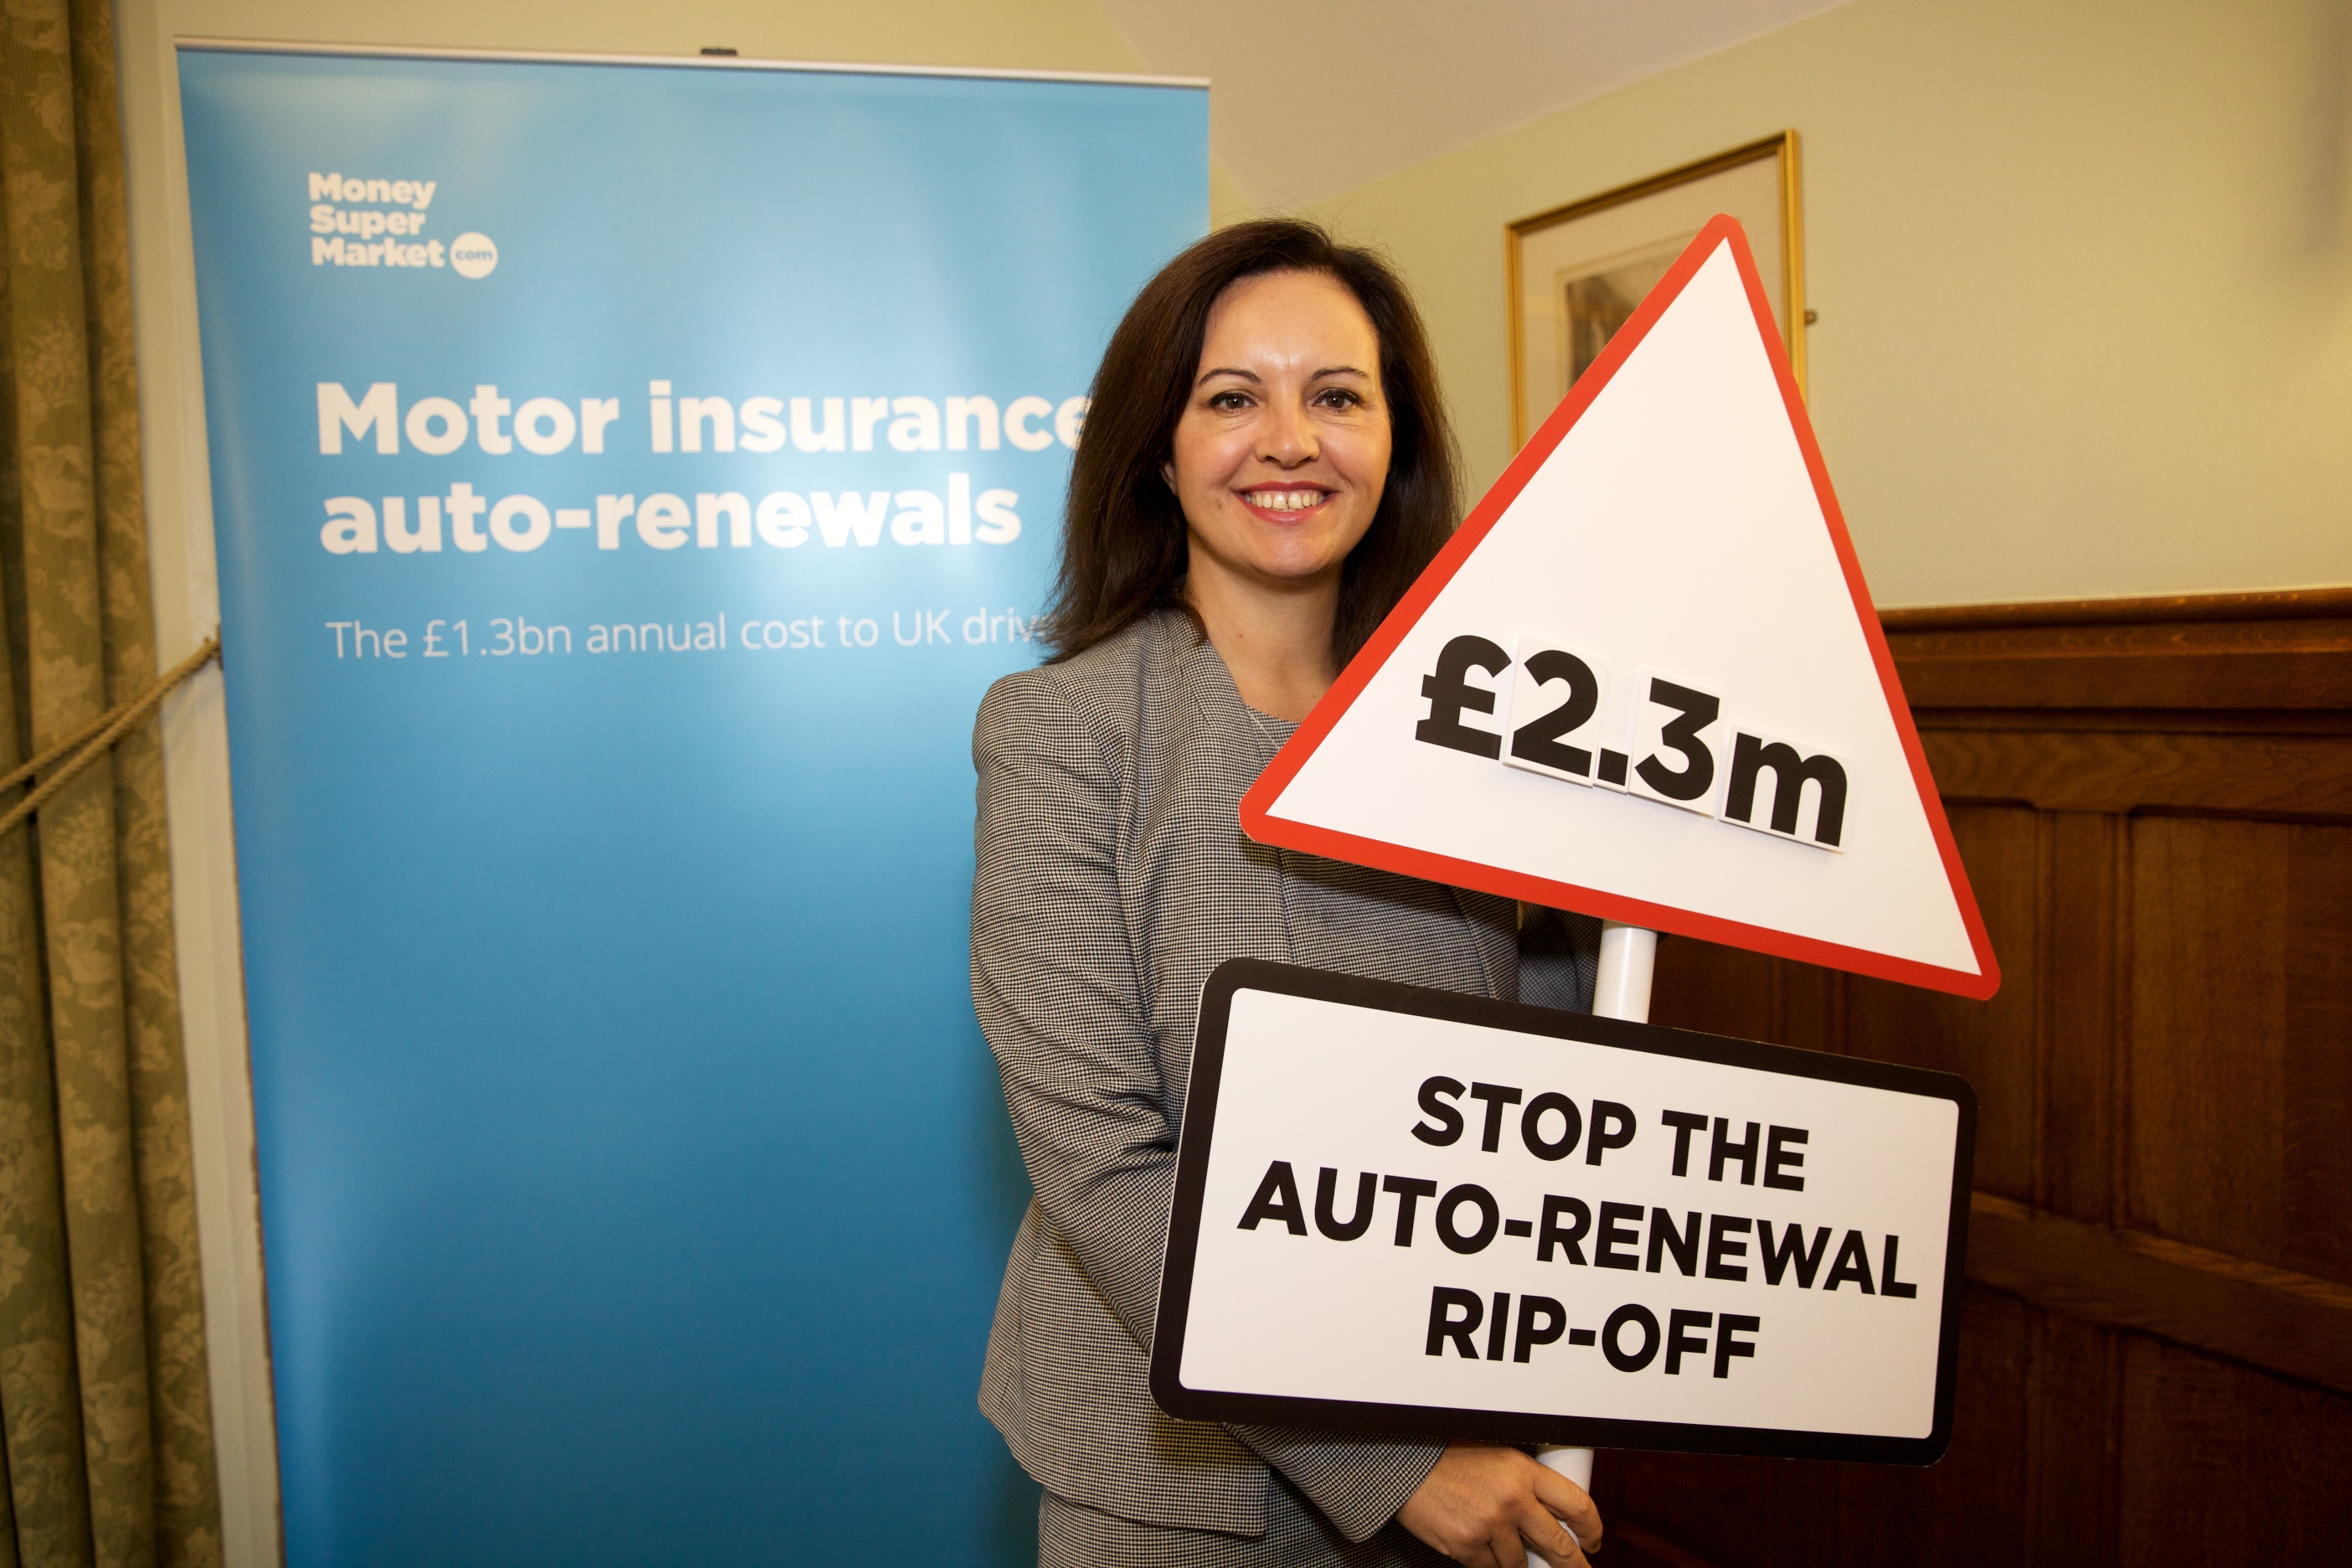 Caroline_Flint_MP_-_moneysupermarket.jpg